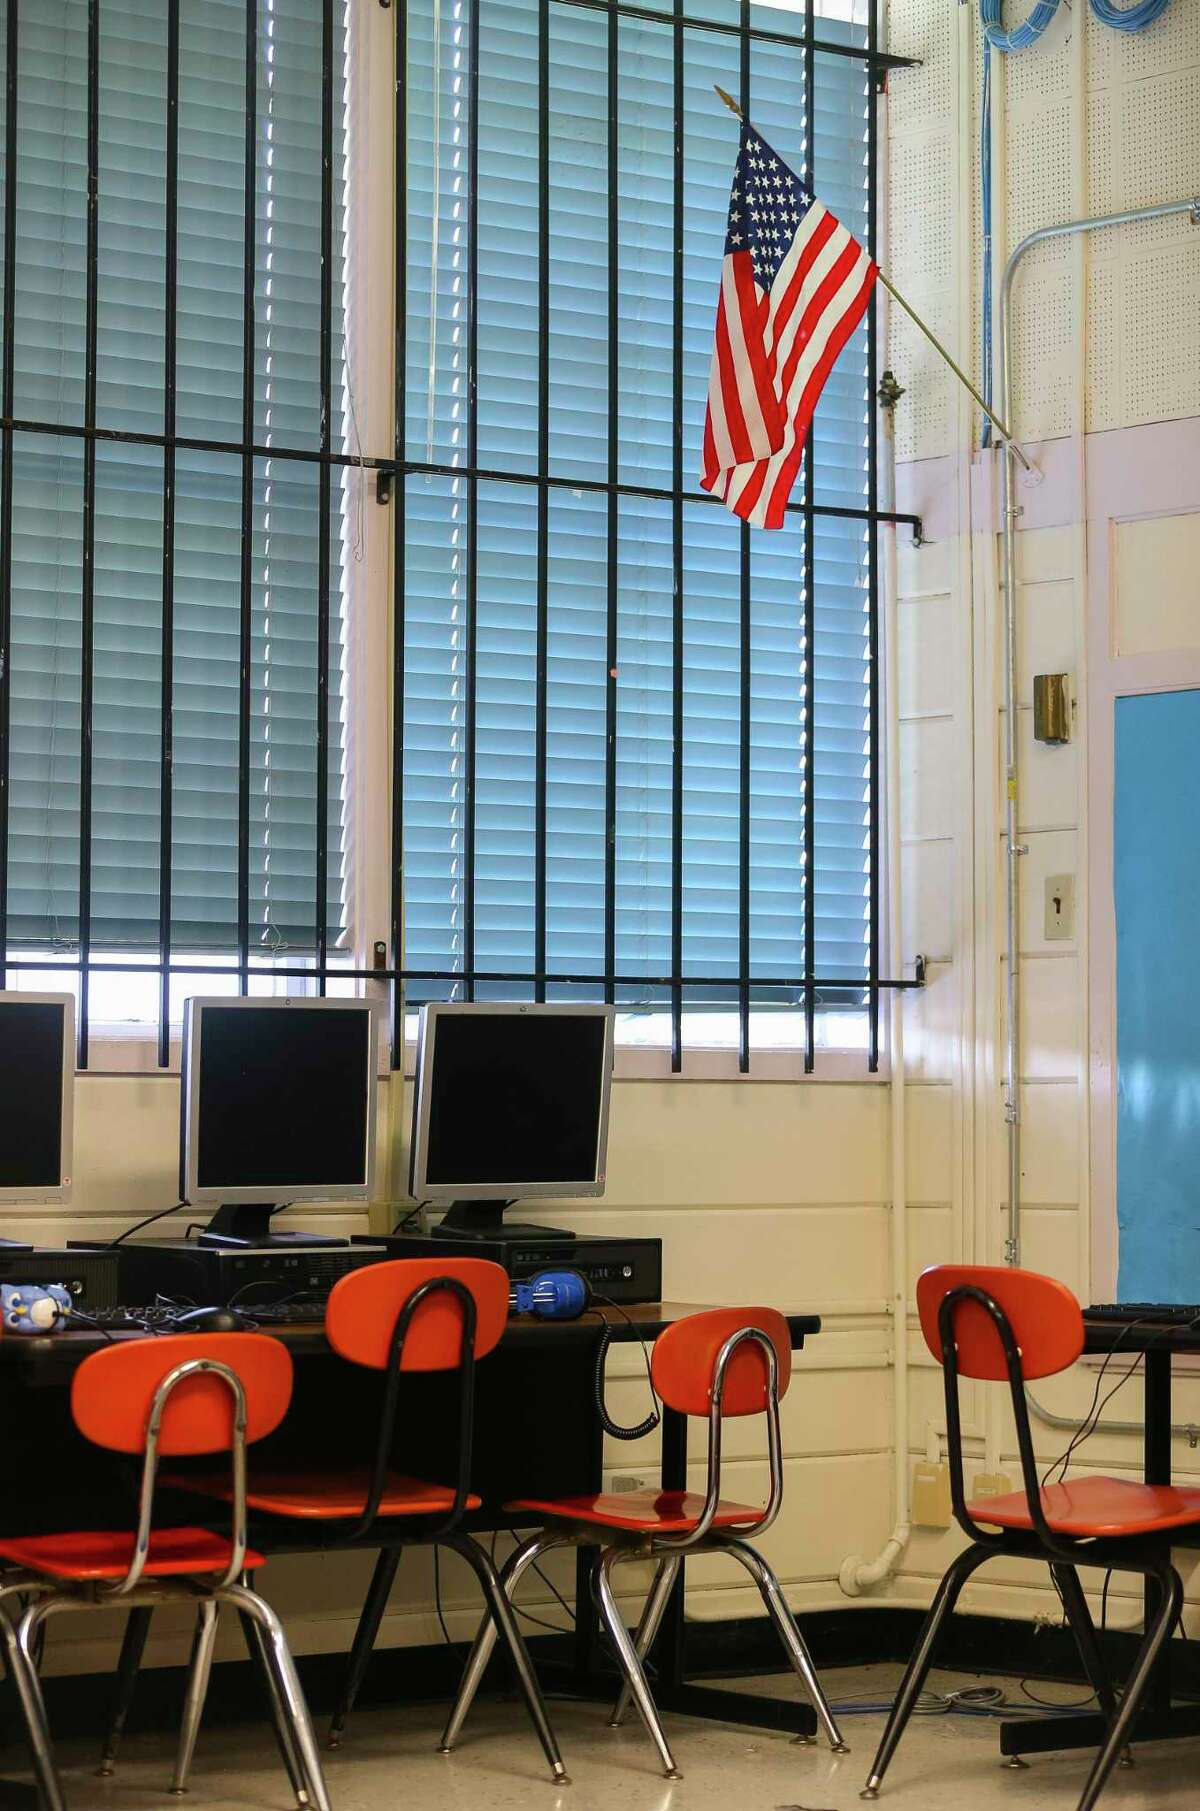 Bars cover the windows in the computer lab at Houston ISD's Kelso Elementary School in 2018. District officials have talked for three years about seeking a bond for renovations at Kelso and other campuses, but a series of leadership issues and the novel coronavirus pandemic have stalled those efforts.